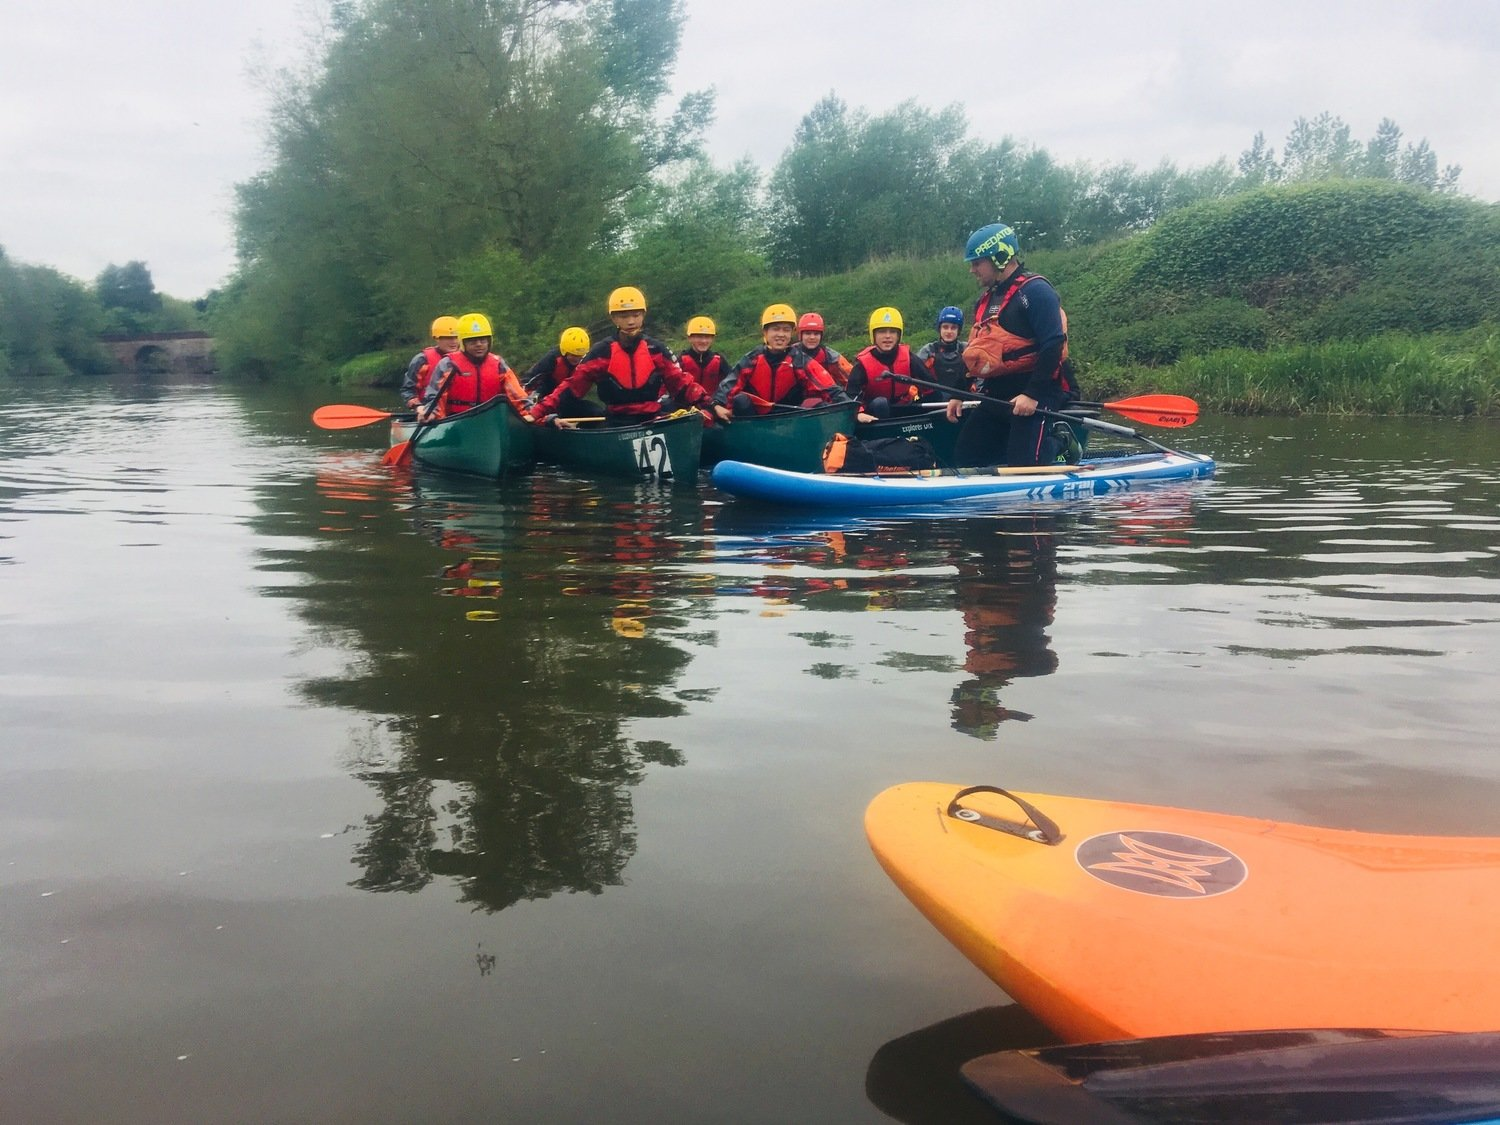 Canoeing Taster Session